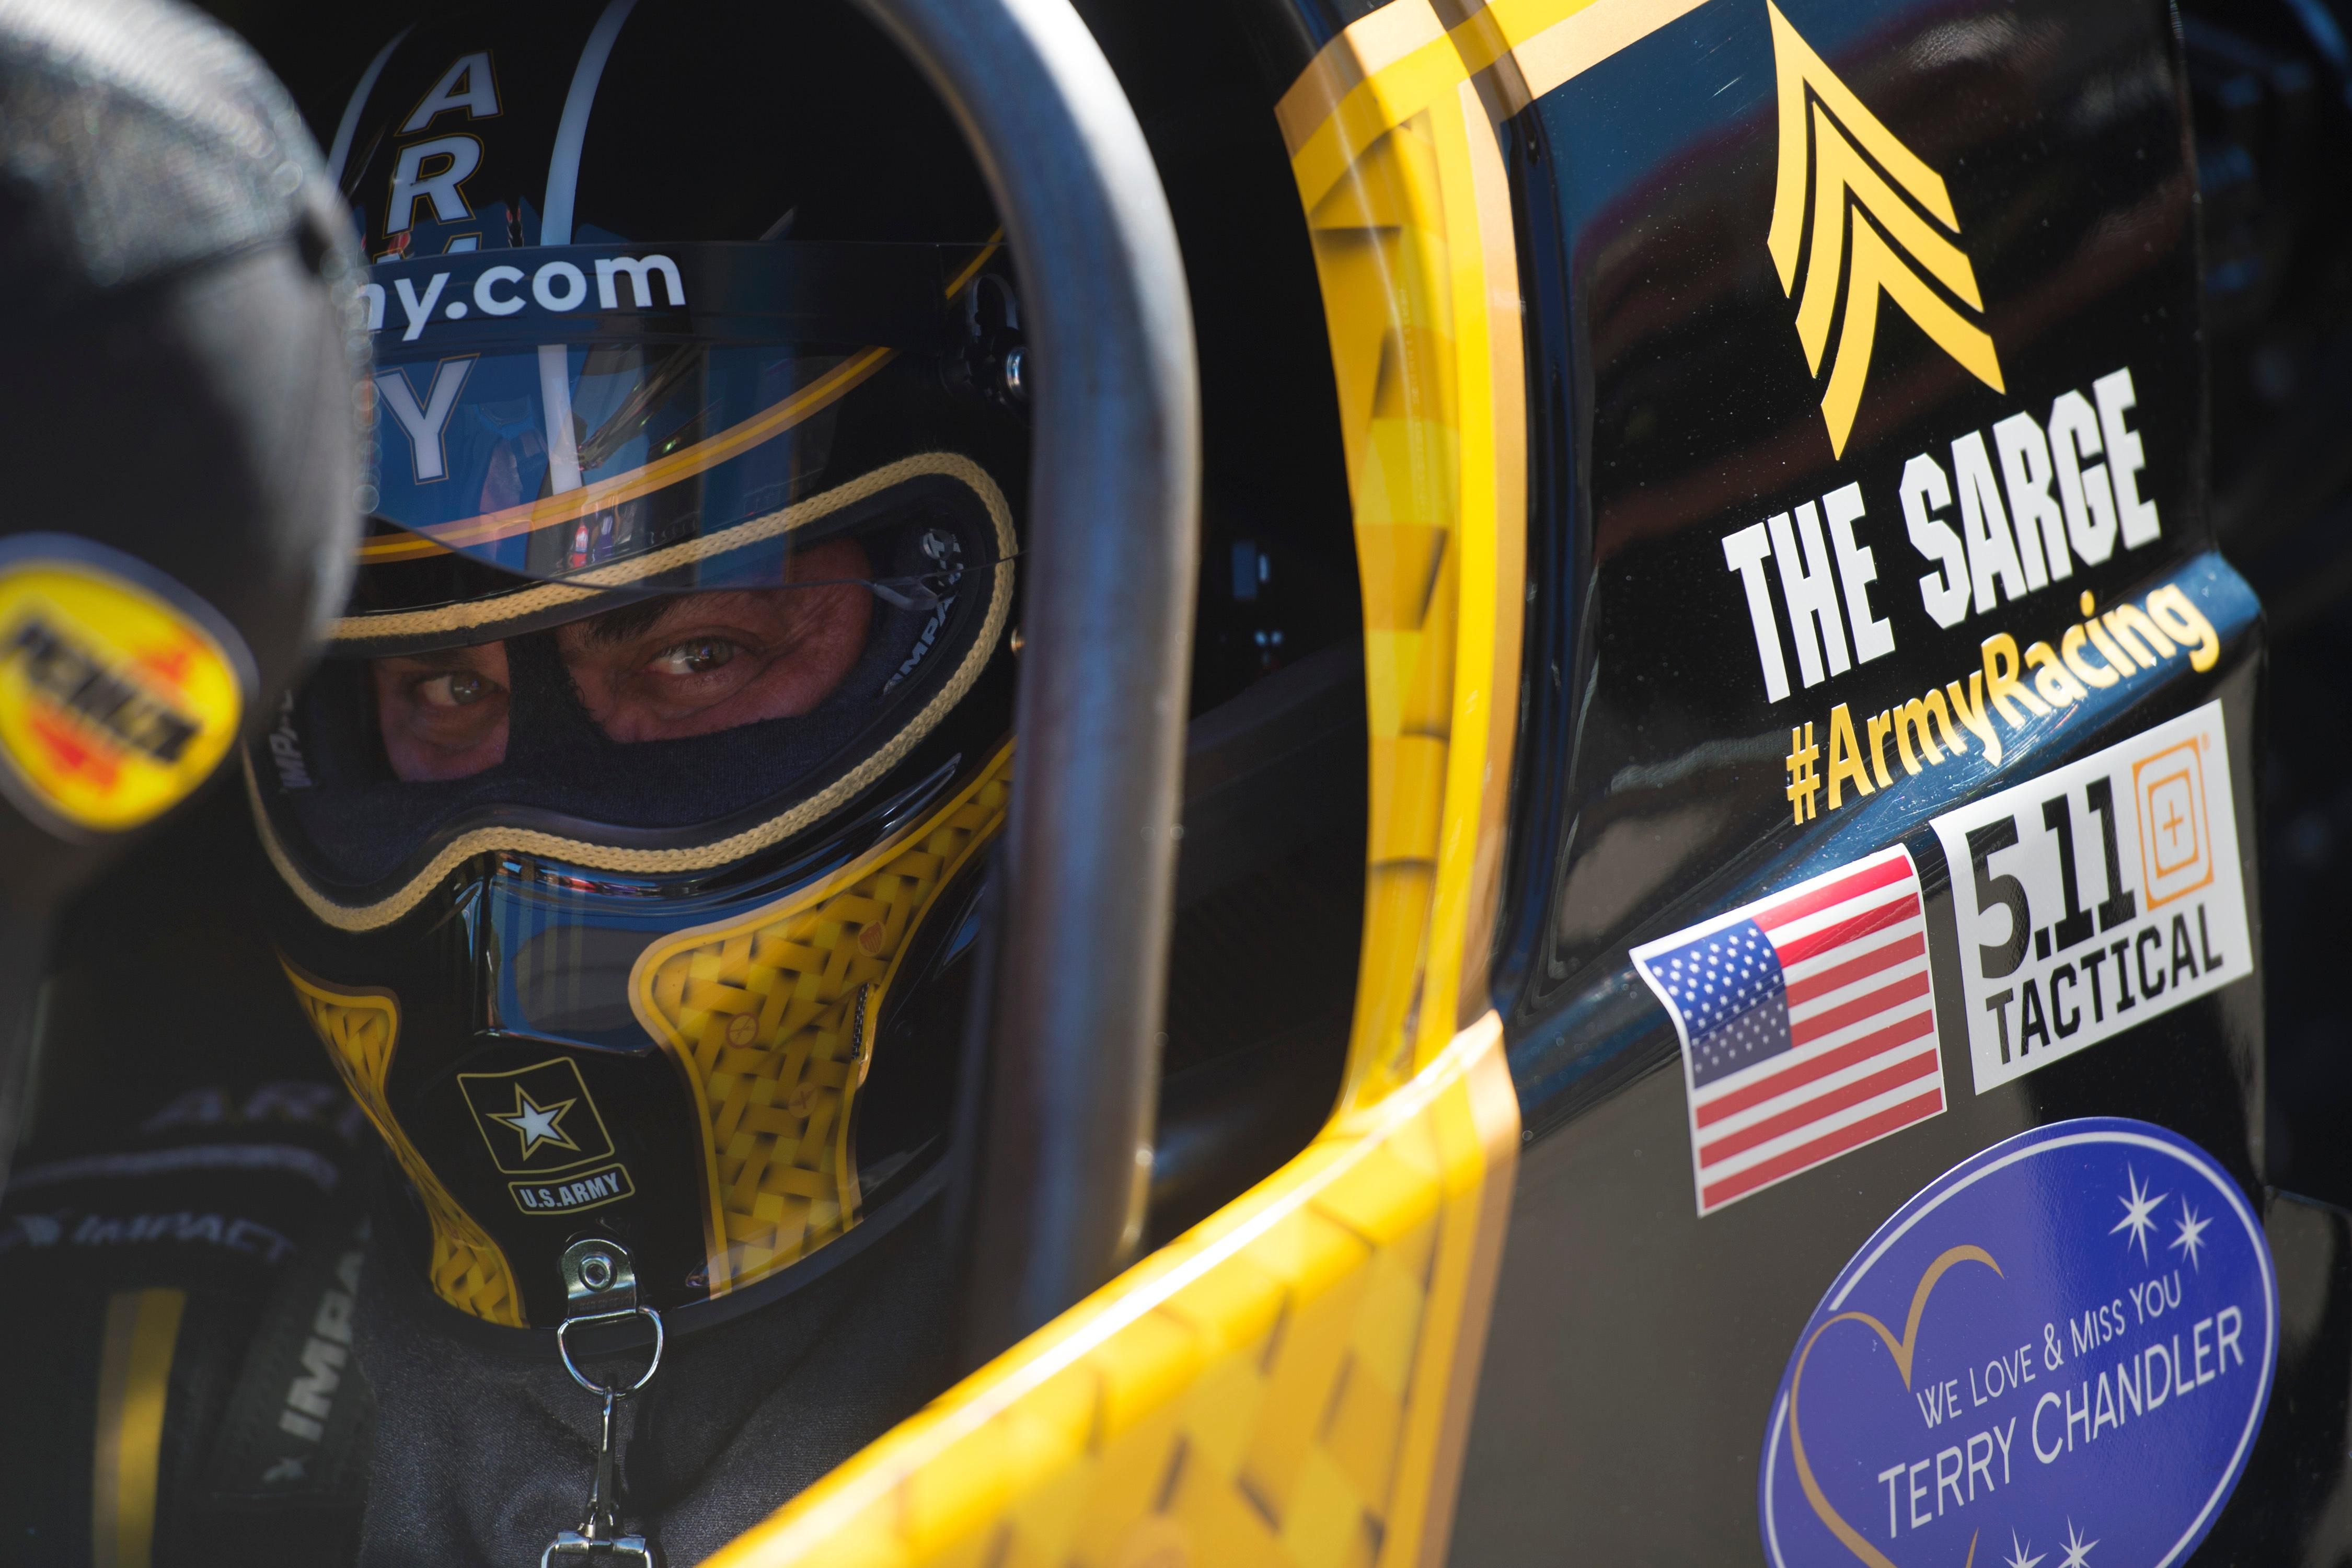 Tony Schumacher sits in the staging lane during the NHRA Toyota Nationals Sunday, October 29, 2017, at The Strip at the Las Vegas Motor Speedway. CREDIT: Sam Morris/Las Vegas News Bureau